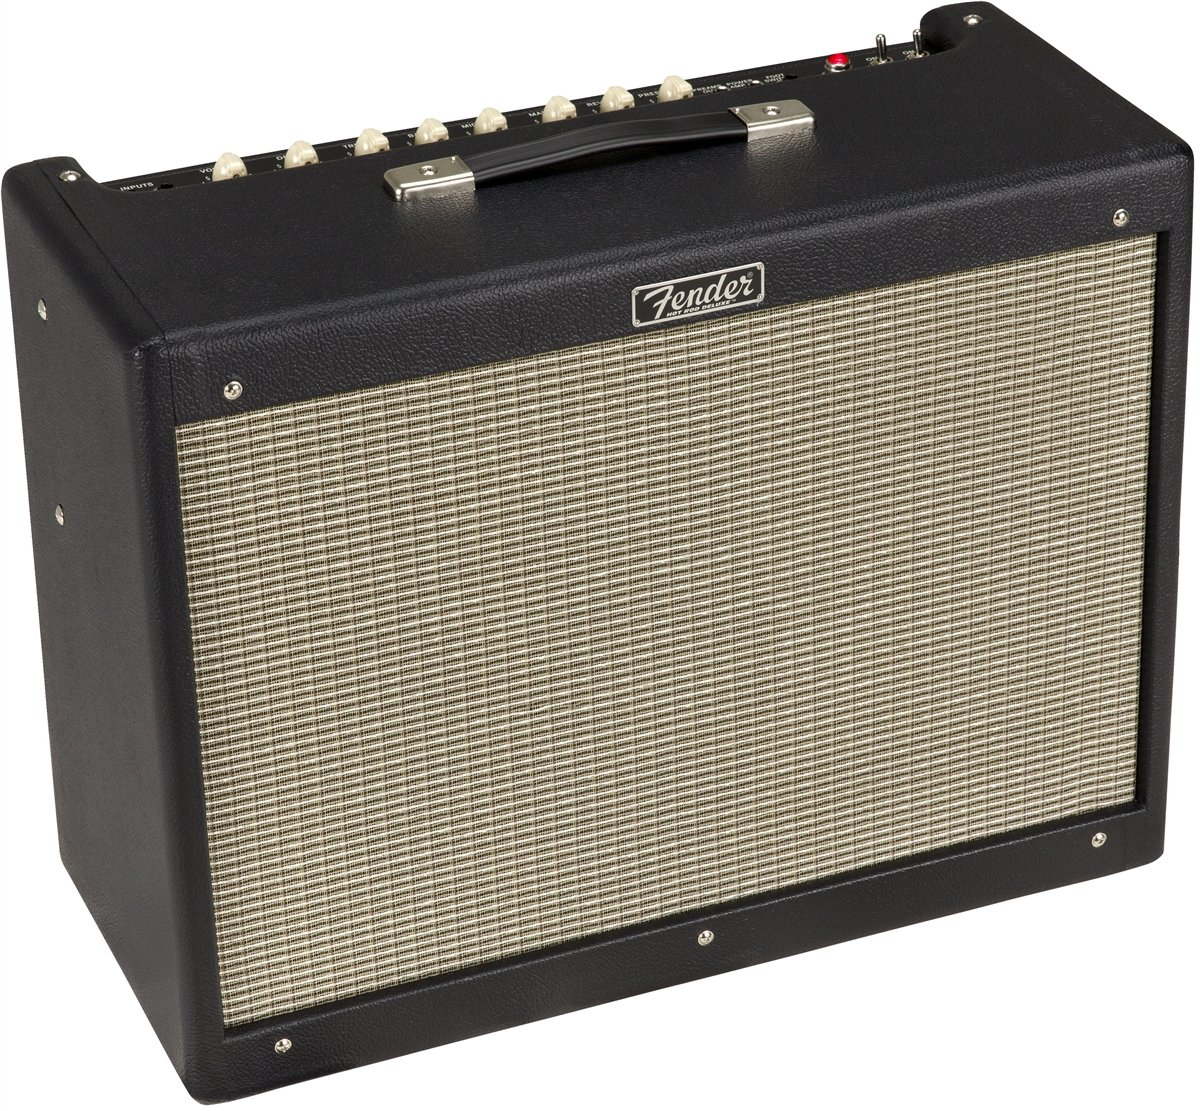 Amazon.com: Fender Hot Rod Deluxe IV 40 Watt Electric Guitar Amplifier: Musical Instruments